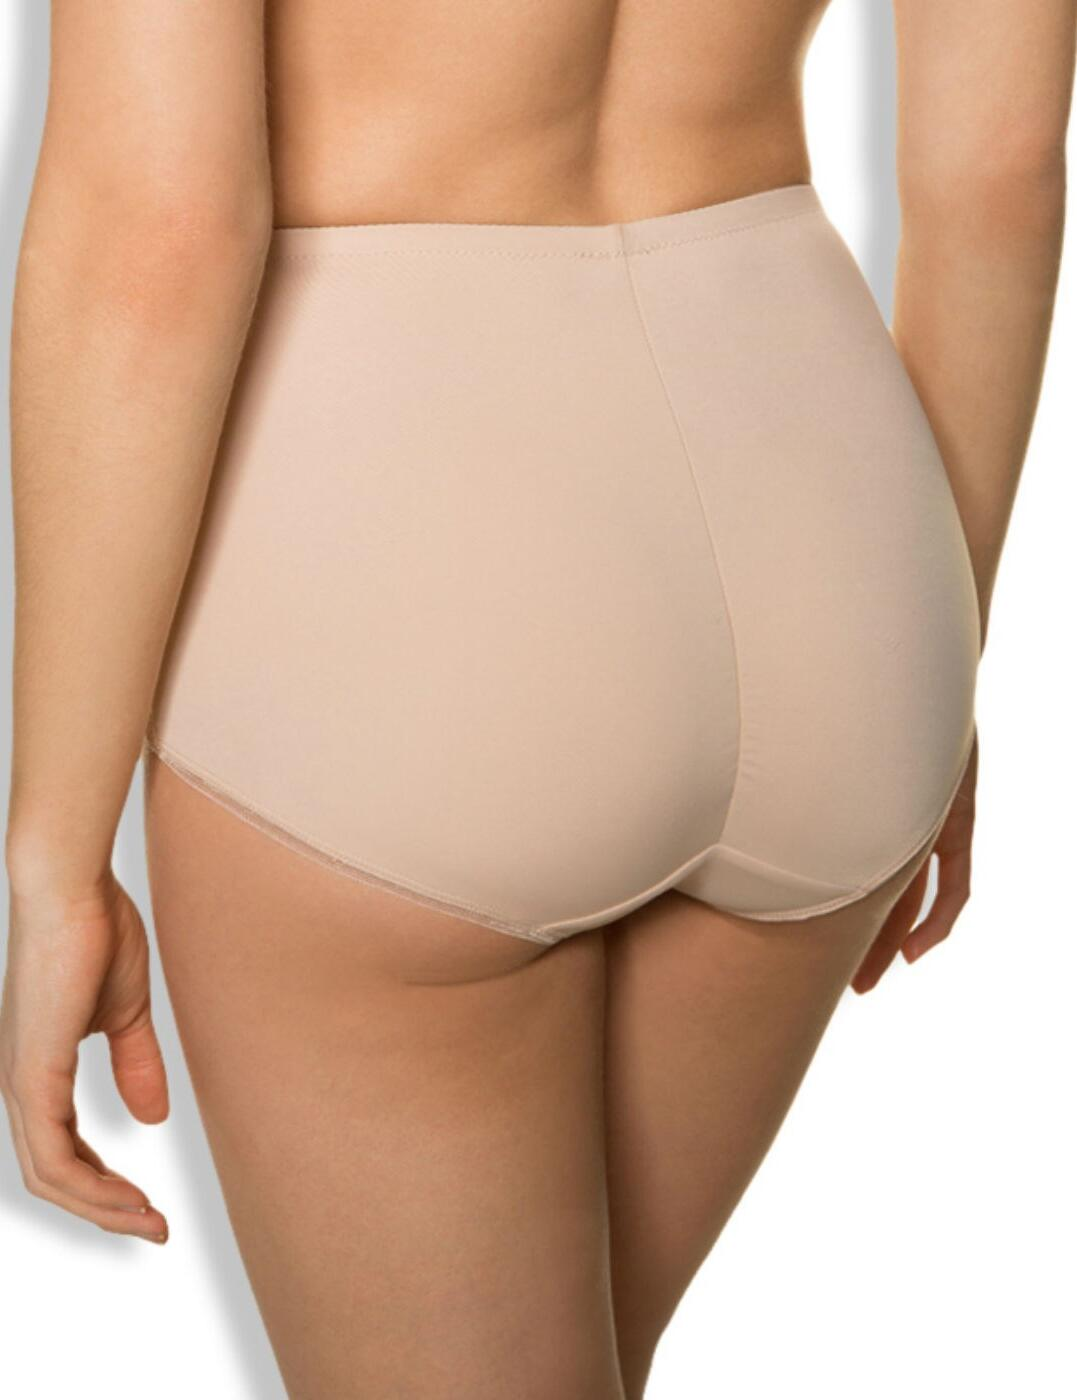 ae13a53ba3 Playtex Expert Silhouette Shaping Panty Girdle Skin Nude High Waist UK 22.  About this product. Picture 1 of 5  Picture 2 of 5  Picture 3 of 5 ...